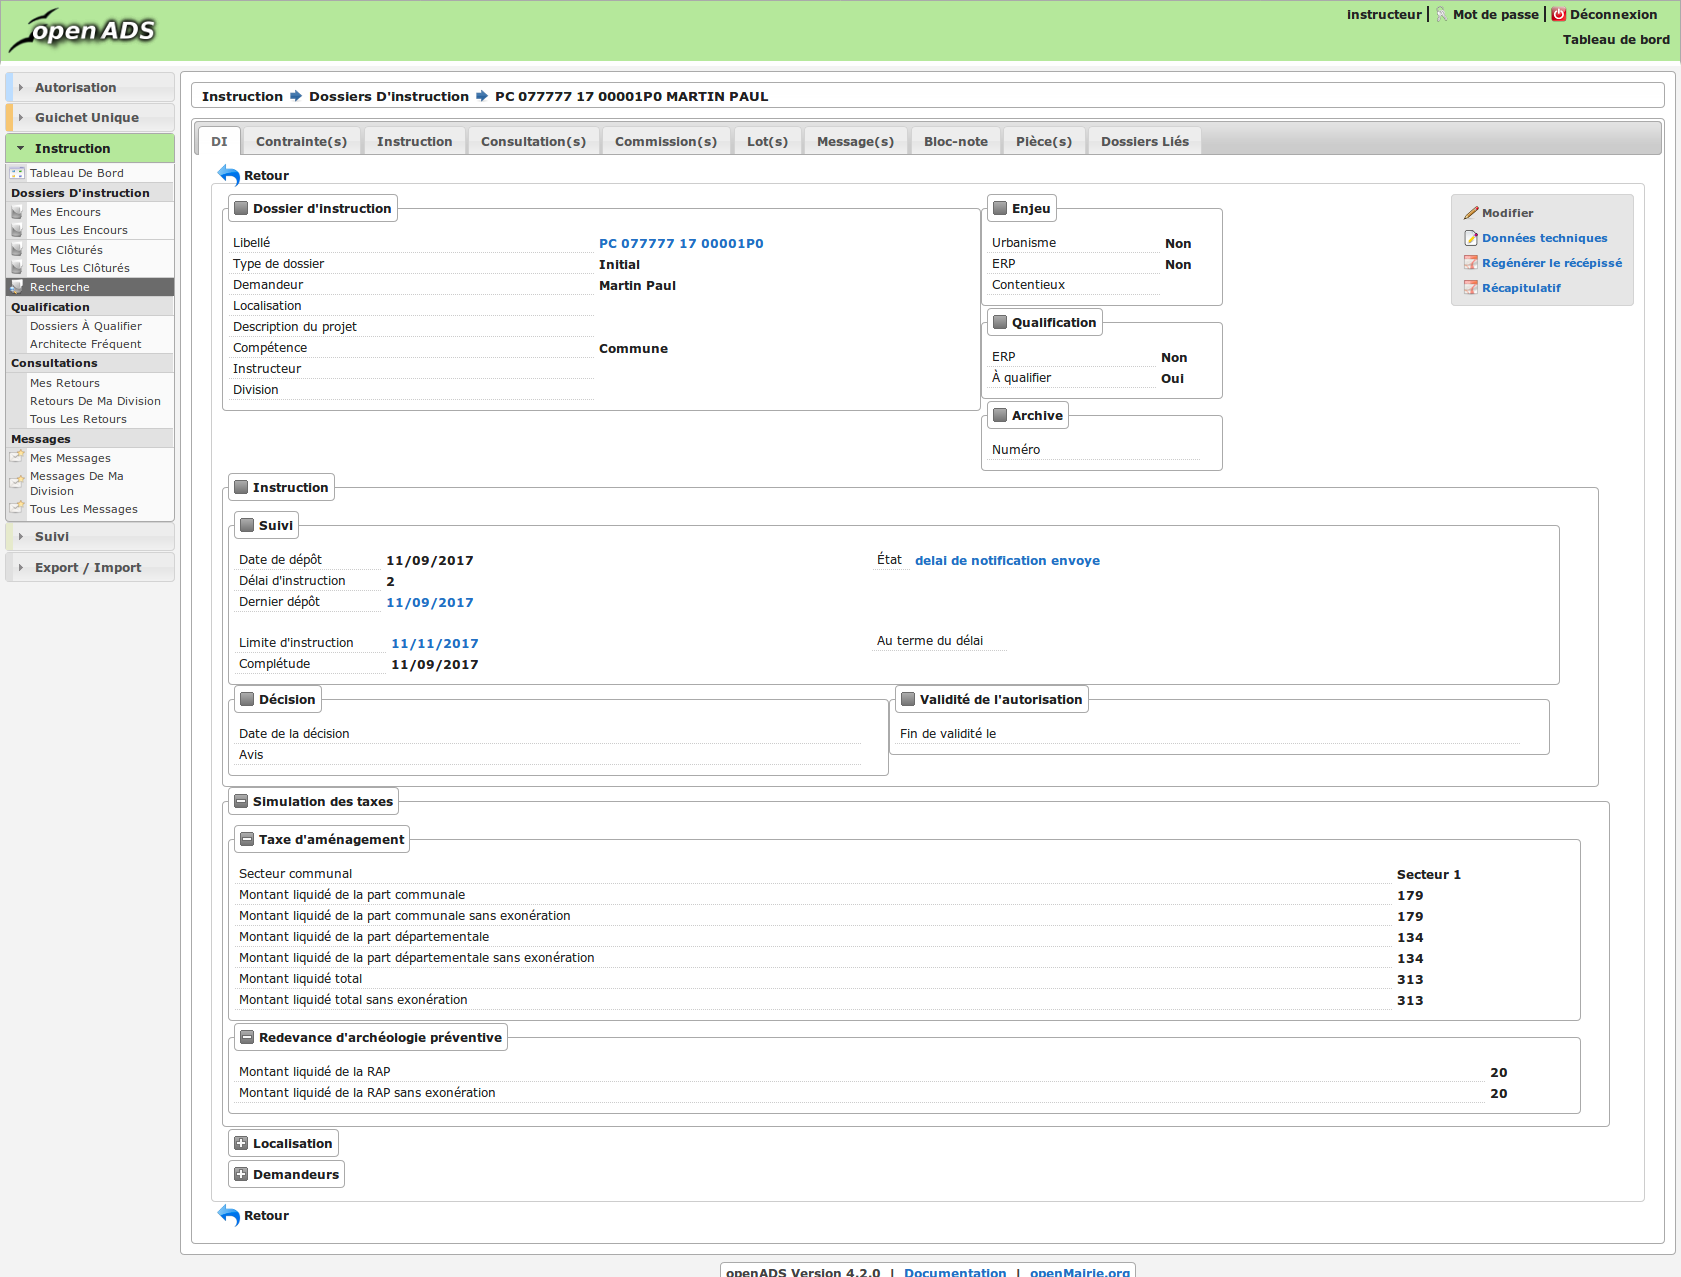 Publication de la version openADS 4.2.0